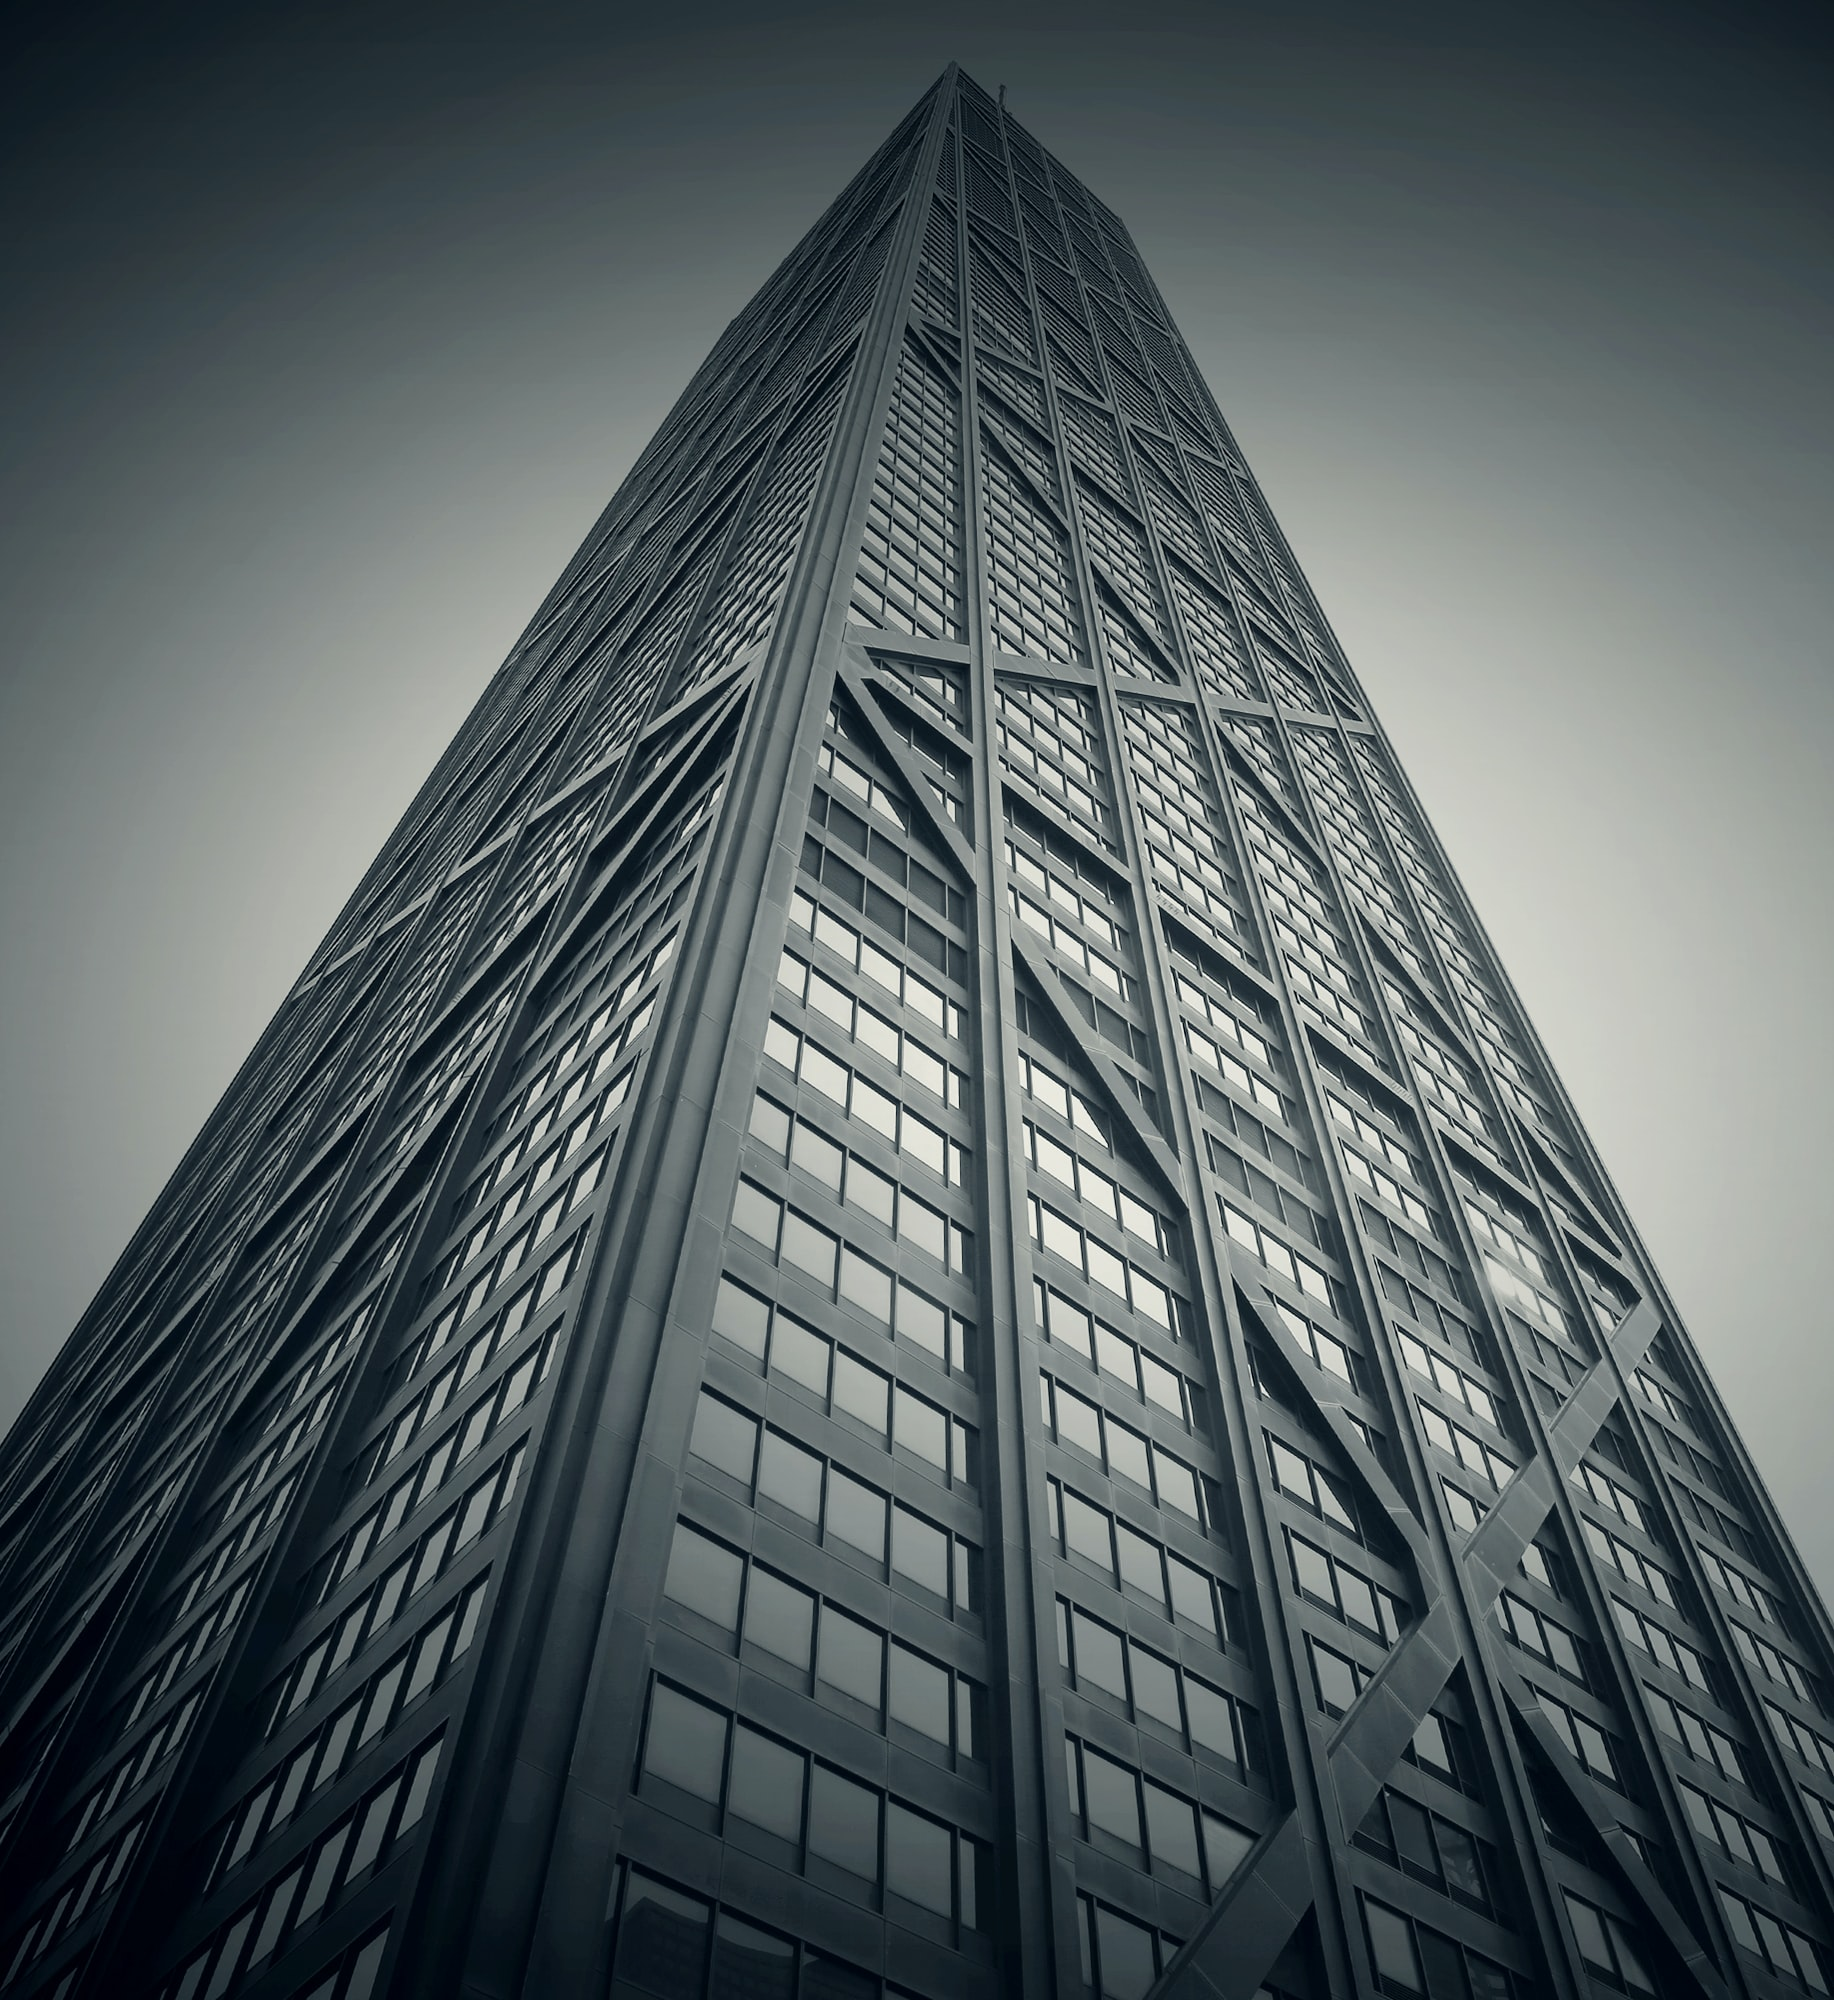 A desaturated shot of a tall skyscraper